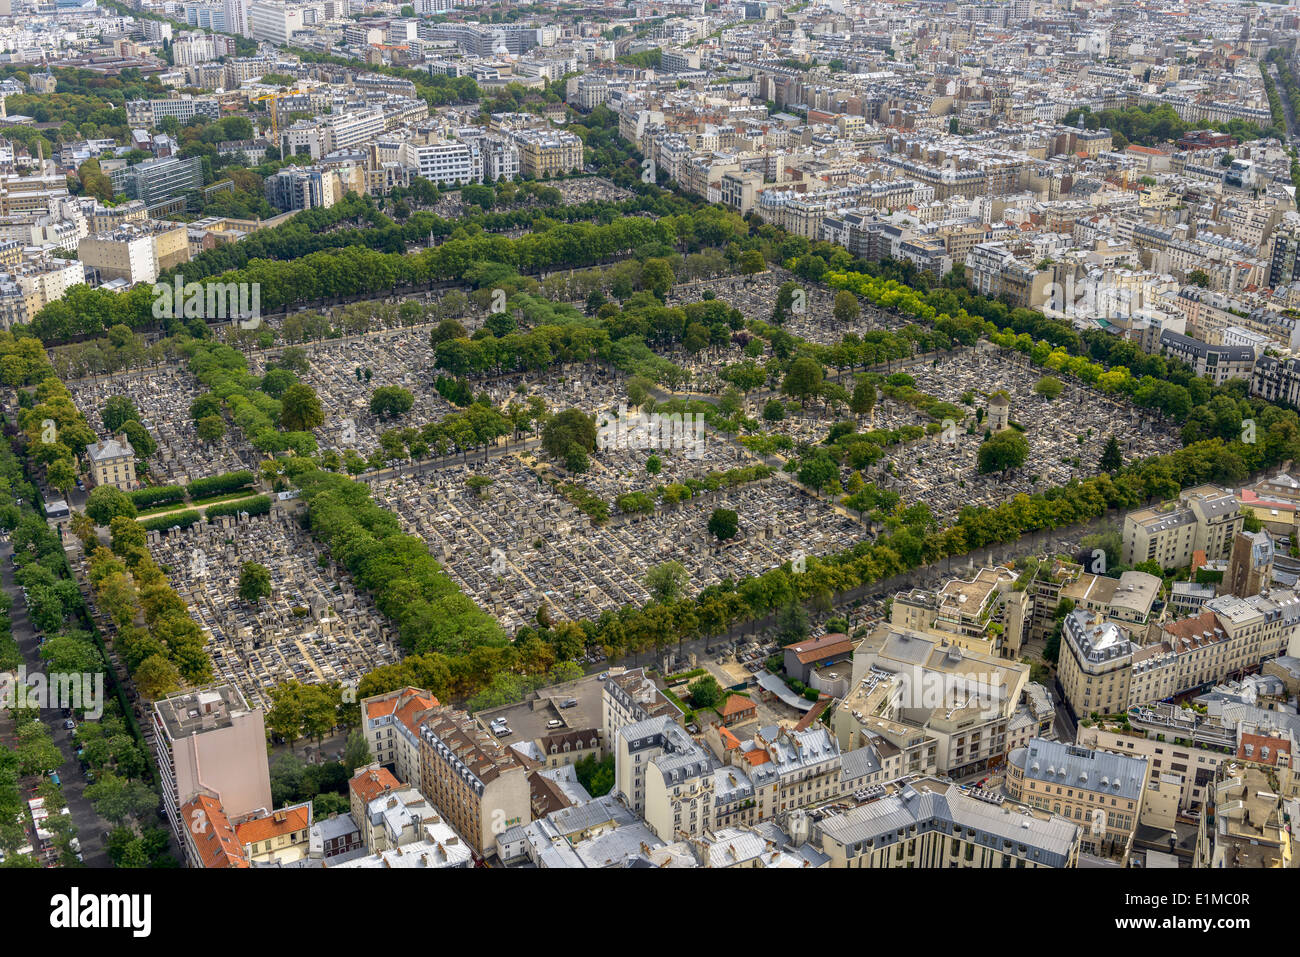 Aerial view of Pere Lachaise Cemetery taken from Montparnasse Tower in Paris, France Stock Photo